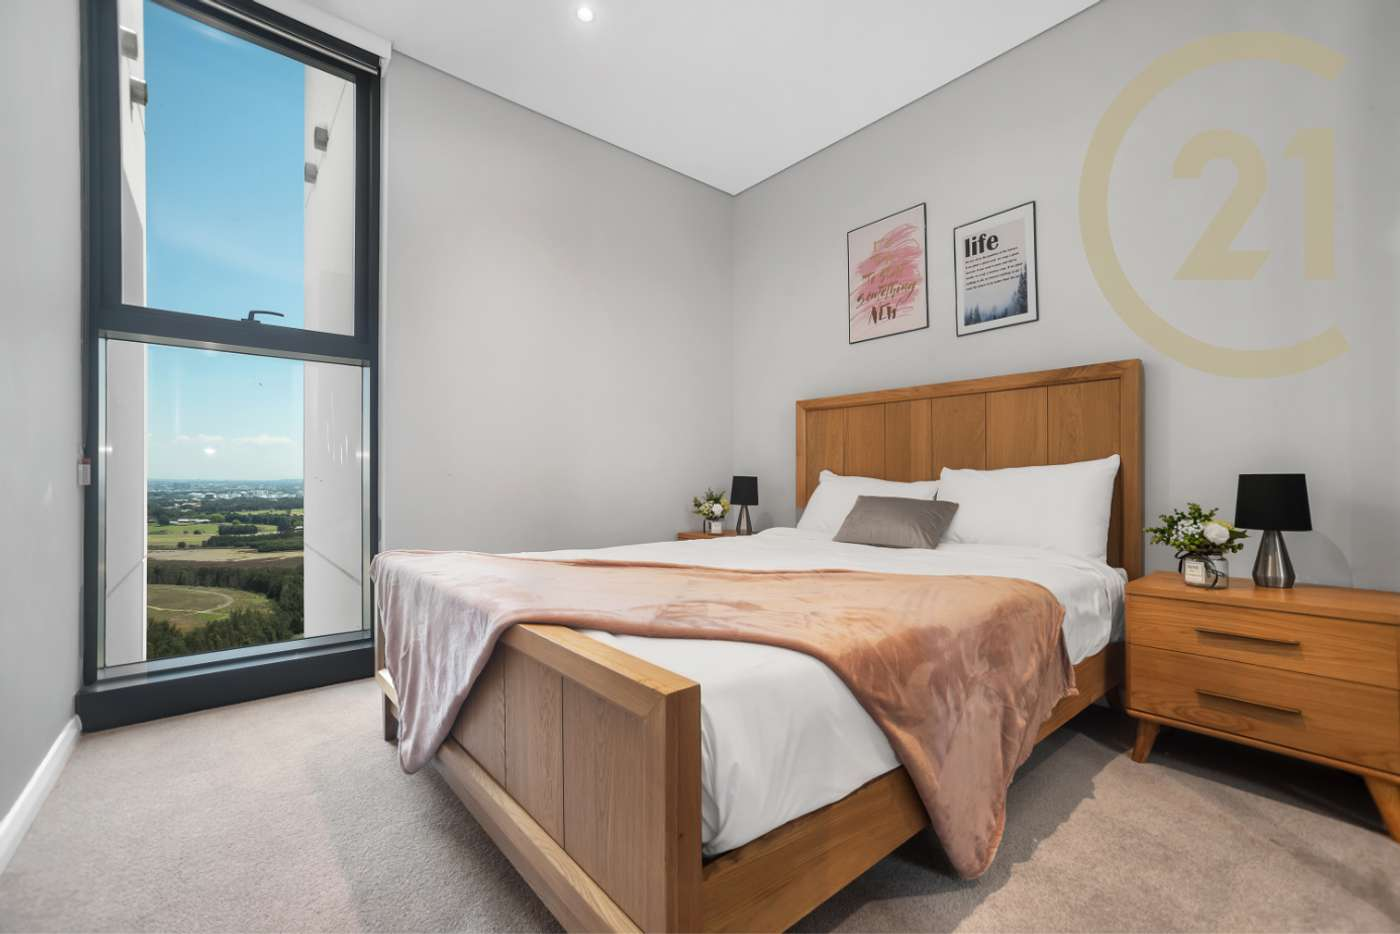 Seventh view of Homely apartment listing, 2510/2 Waterway st, Wentworth Point NSW 2127